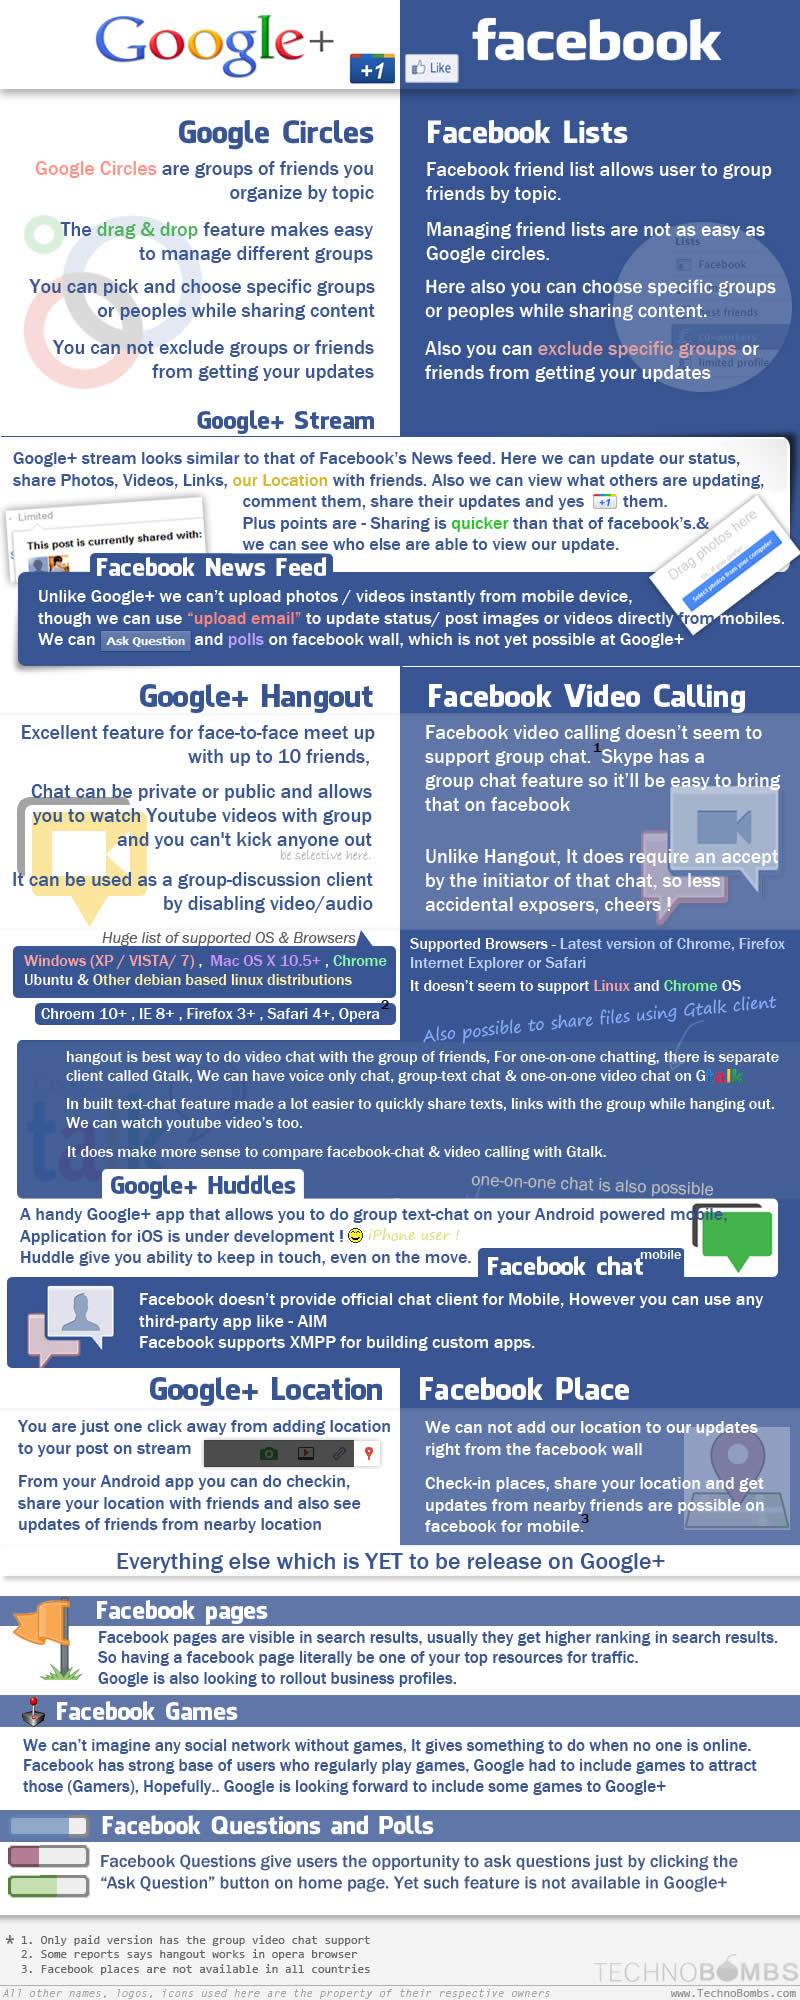 google plus vs facebook marketing analysis